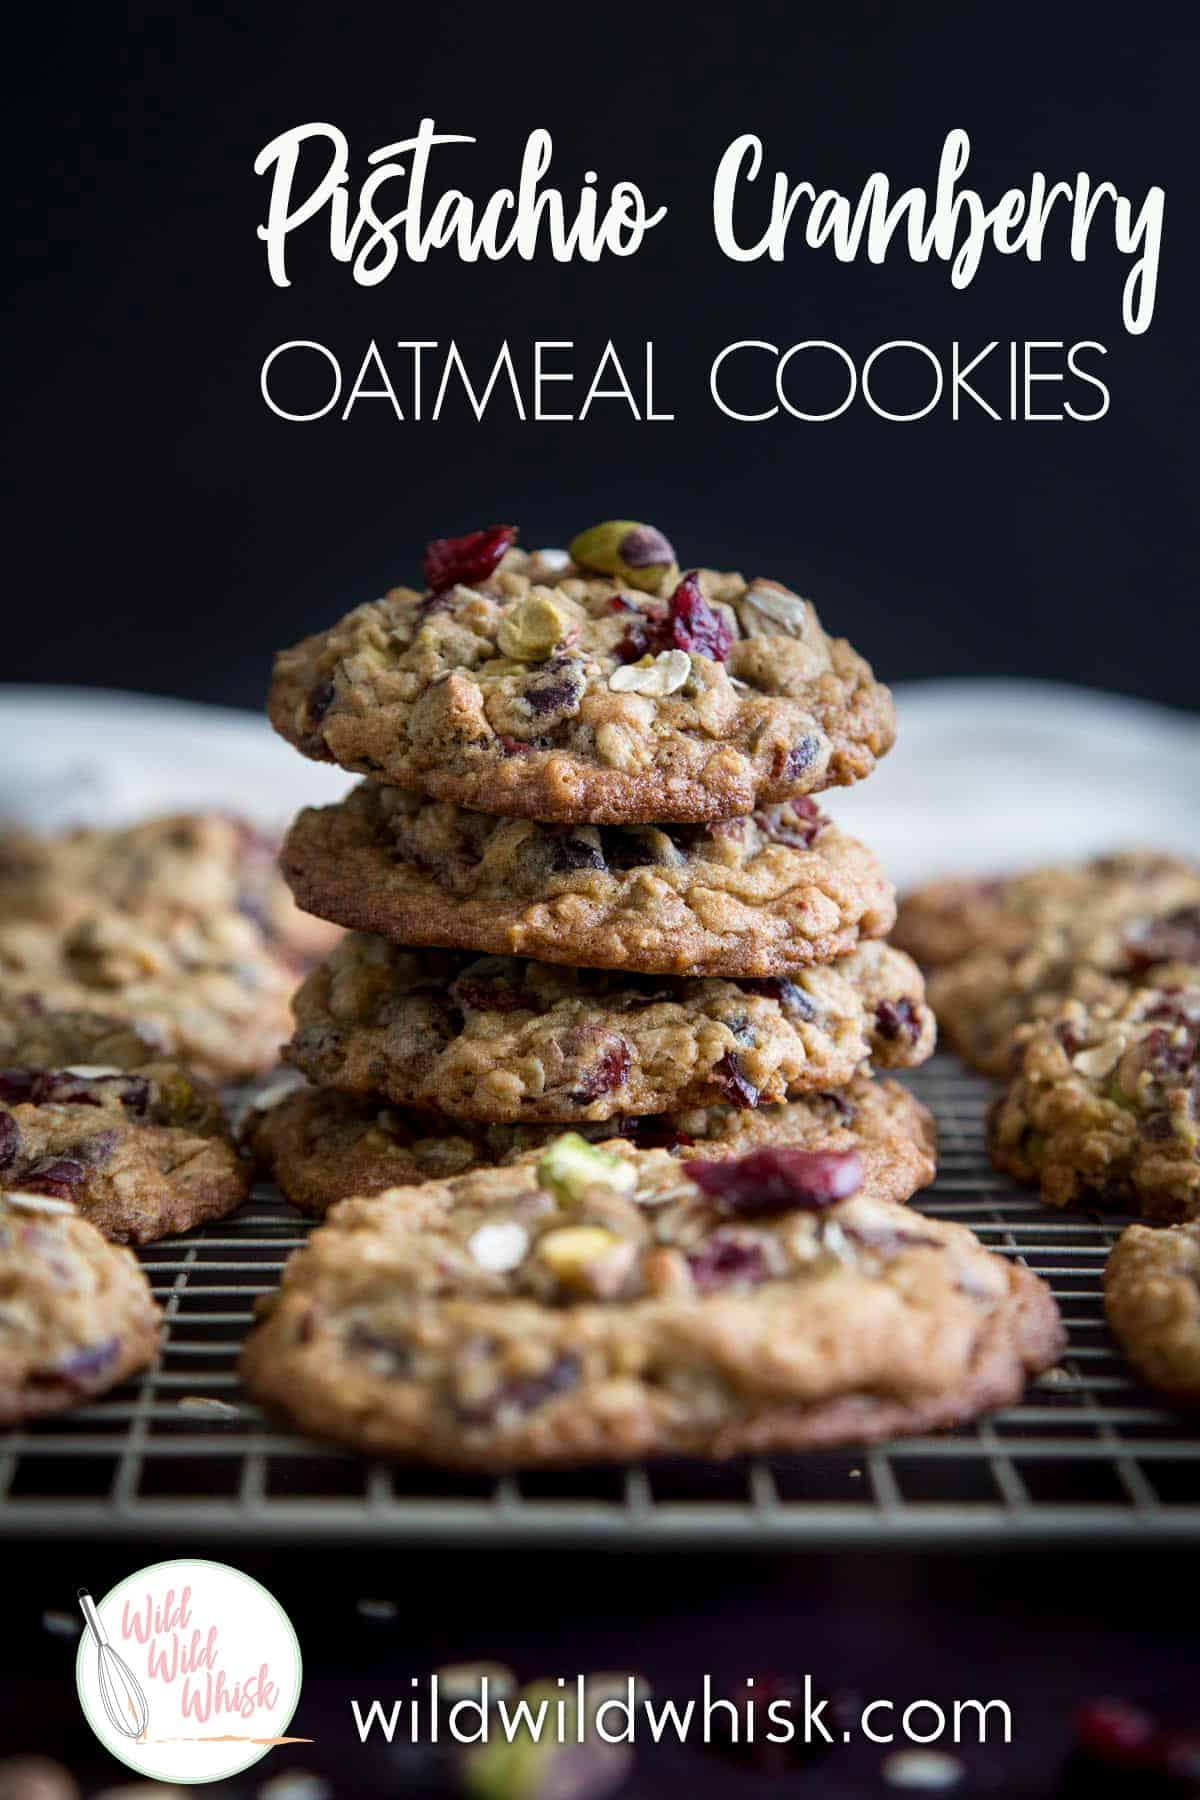 These Pistachio Oatmeal Cranberry Cookies are the best chewy oatmeal cookies recipe you will ever need. #wildwildwhisk #oatmealcookies #oatcookies #cookies #cookierecipes #pistachio #pistachiocookies #cranberry #cranberryorange #driedcranberry